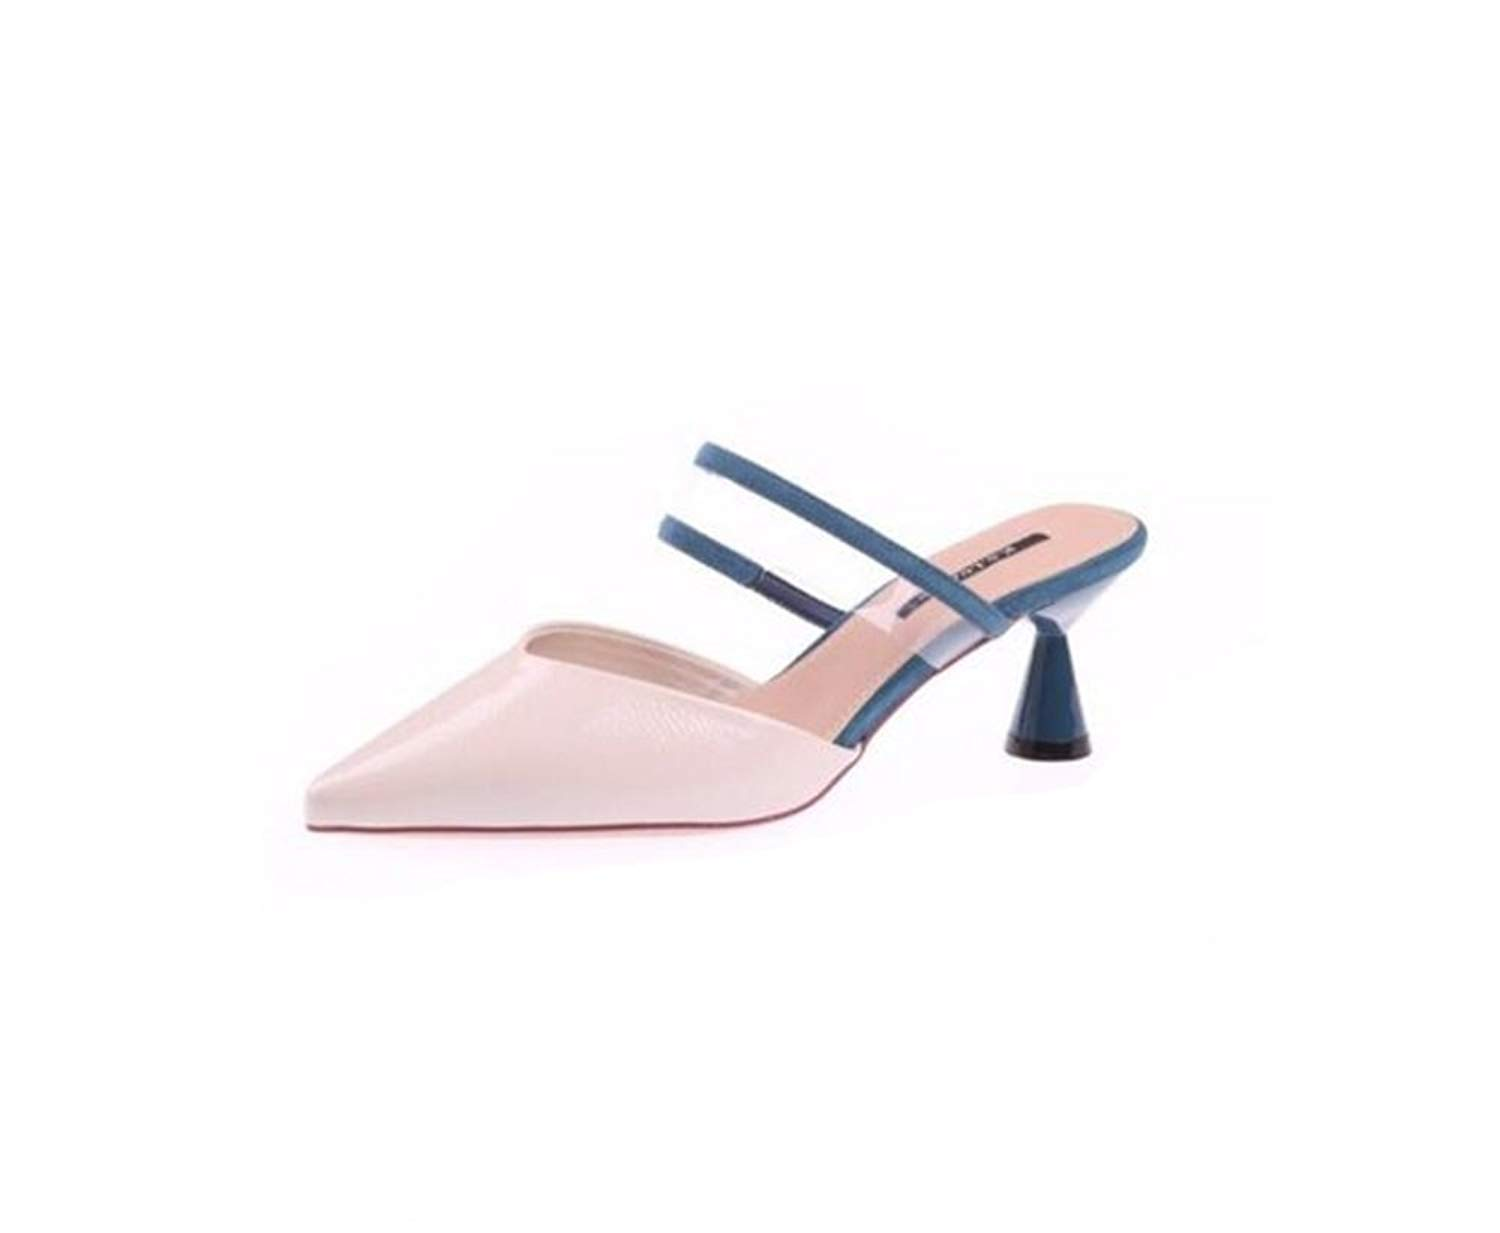 01b96dfb4128 Get Quotations · MOREMOO Women Luxury Mules Slippers Pointed Toe Half Slippers  Ladies Fashion Mules Shoes Slip on